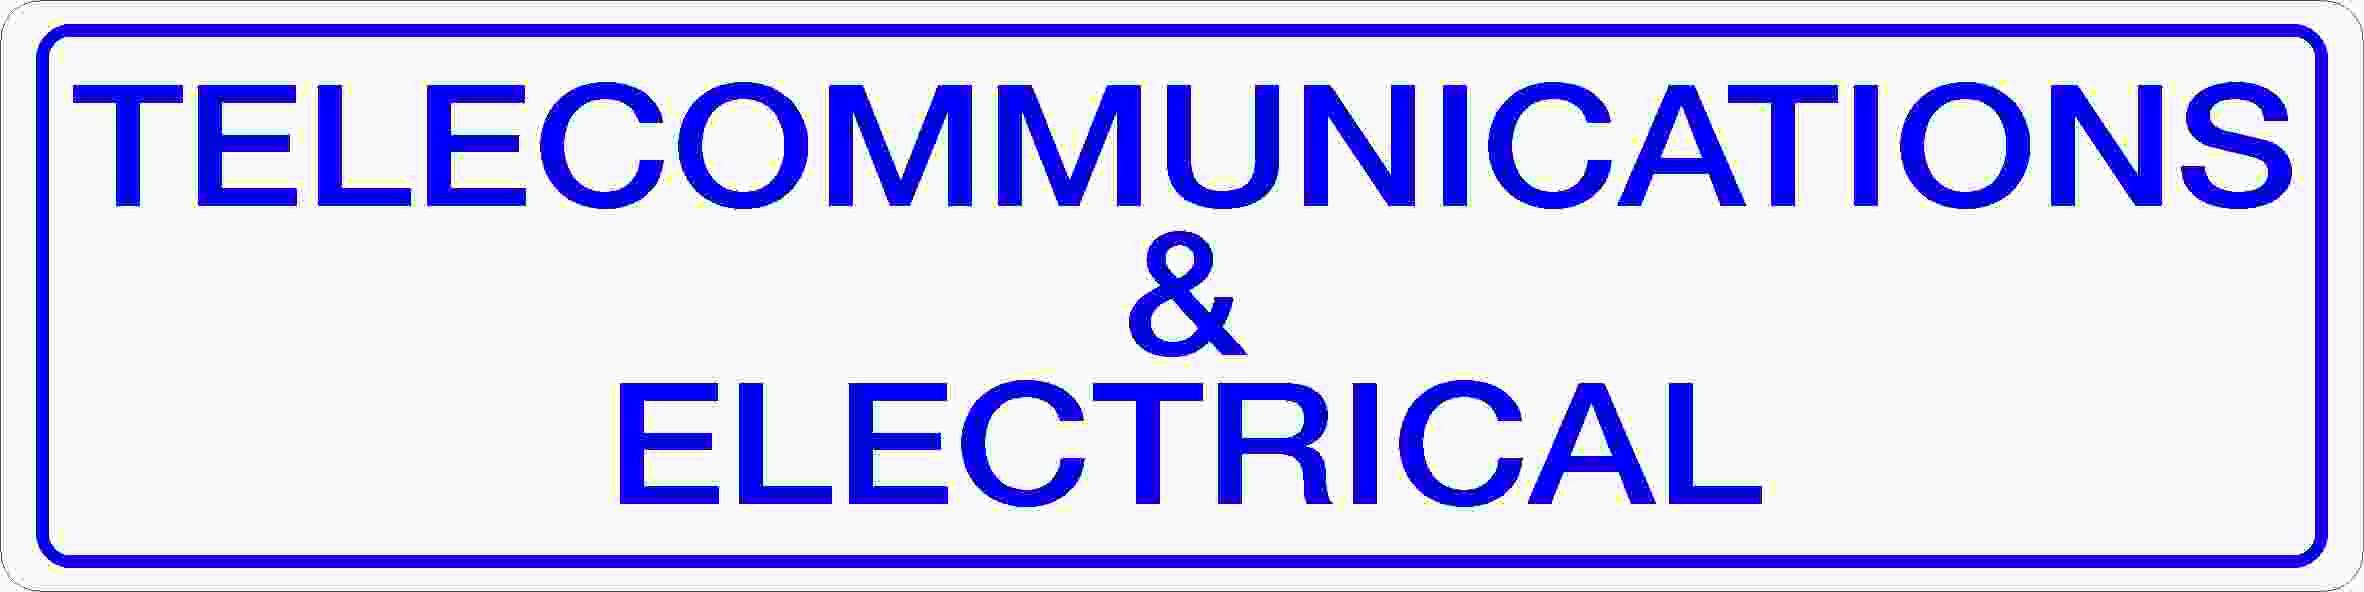 Miscellaneous Signs TELECOMMUNICATIONS & ELECTRICAL